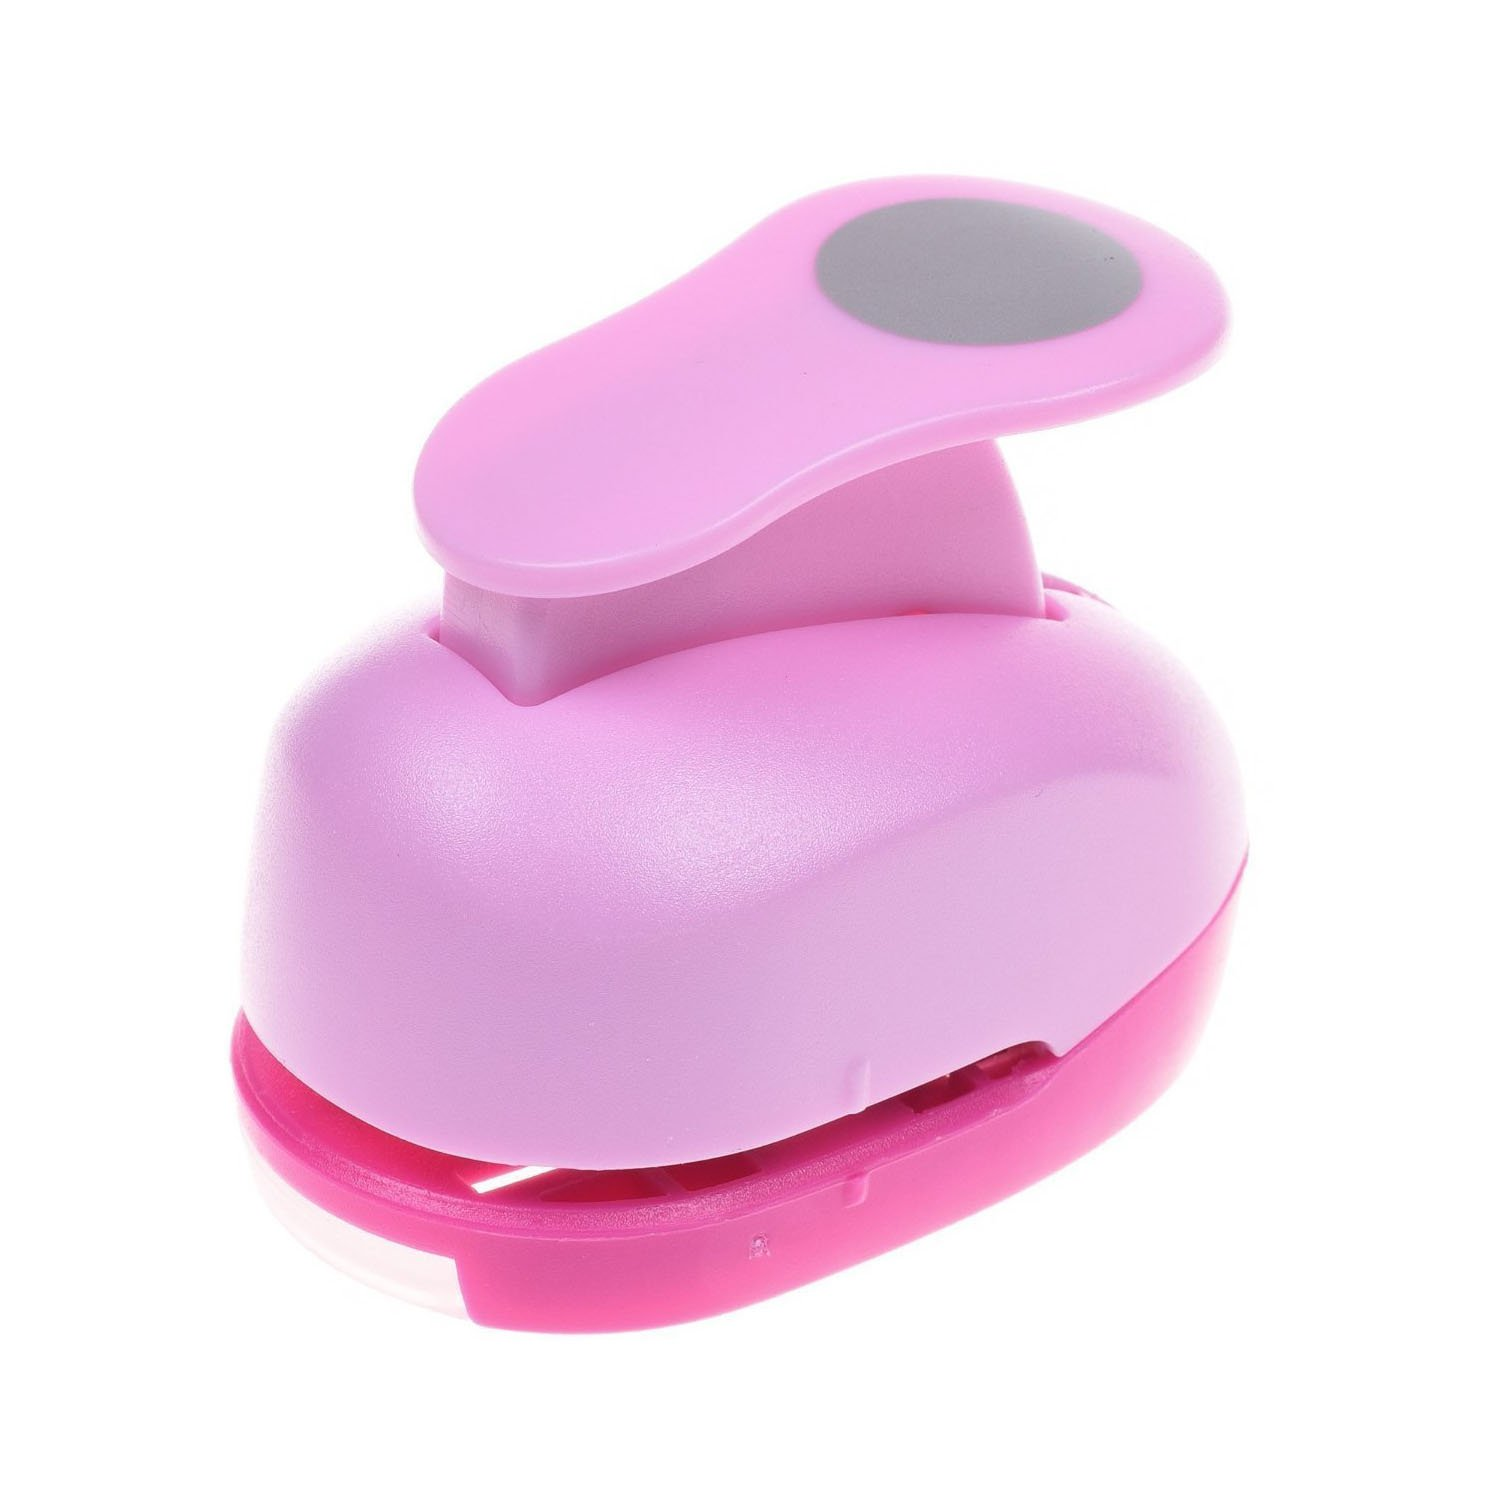 1 inch Circle Paper Craft Punch Tool for Scrapbook Greeting Crads DIY Handmake Projects D-Worthy